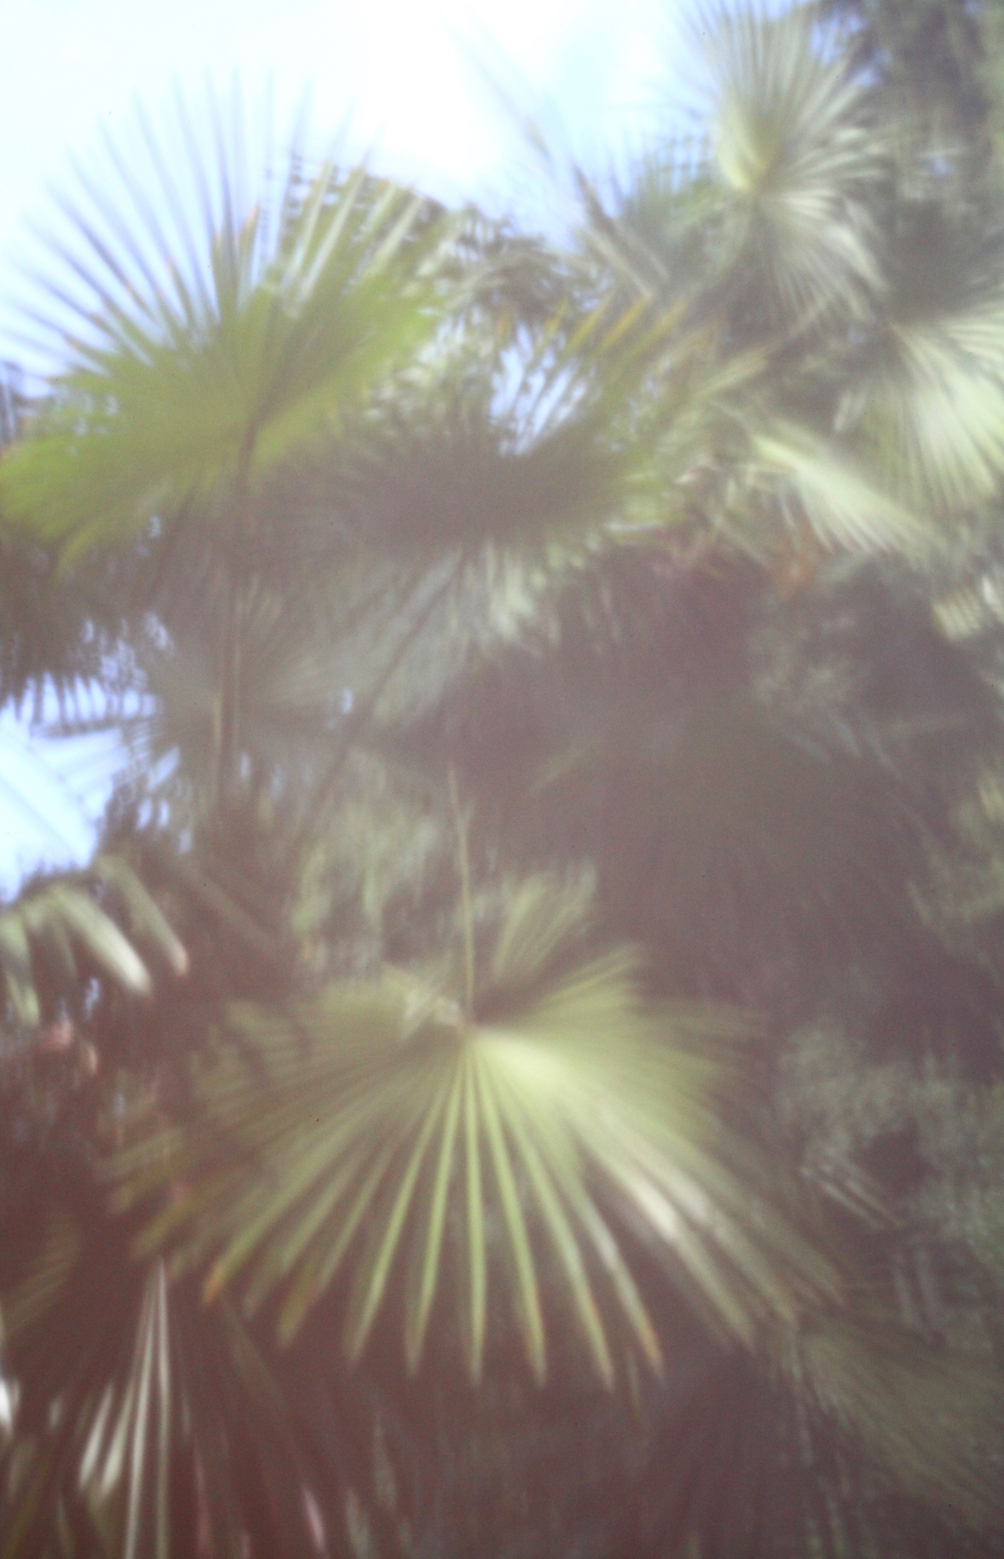 'View from the bedroom', 2011/15, Pinhole photograph, laser-print on 180gsm cartridge paper, 12 x 18 cm